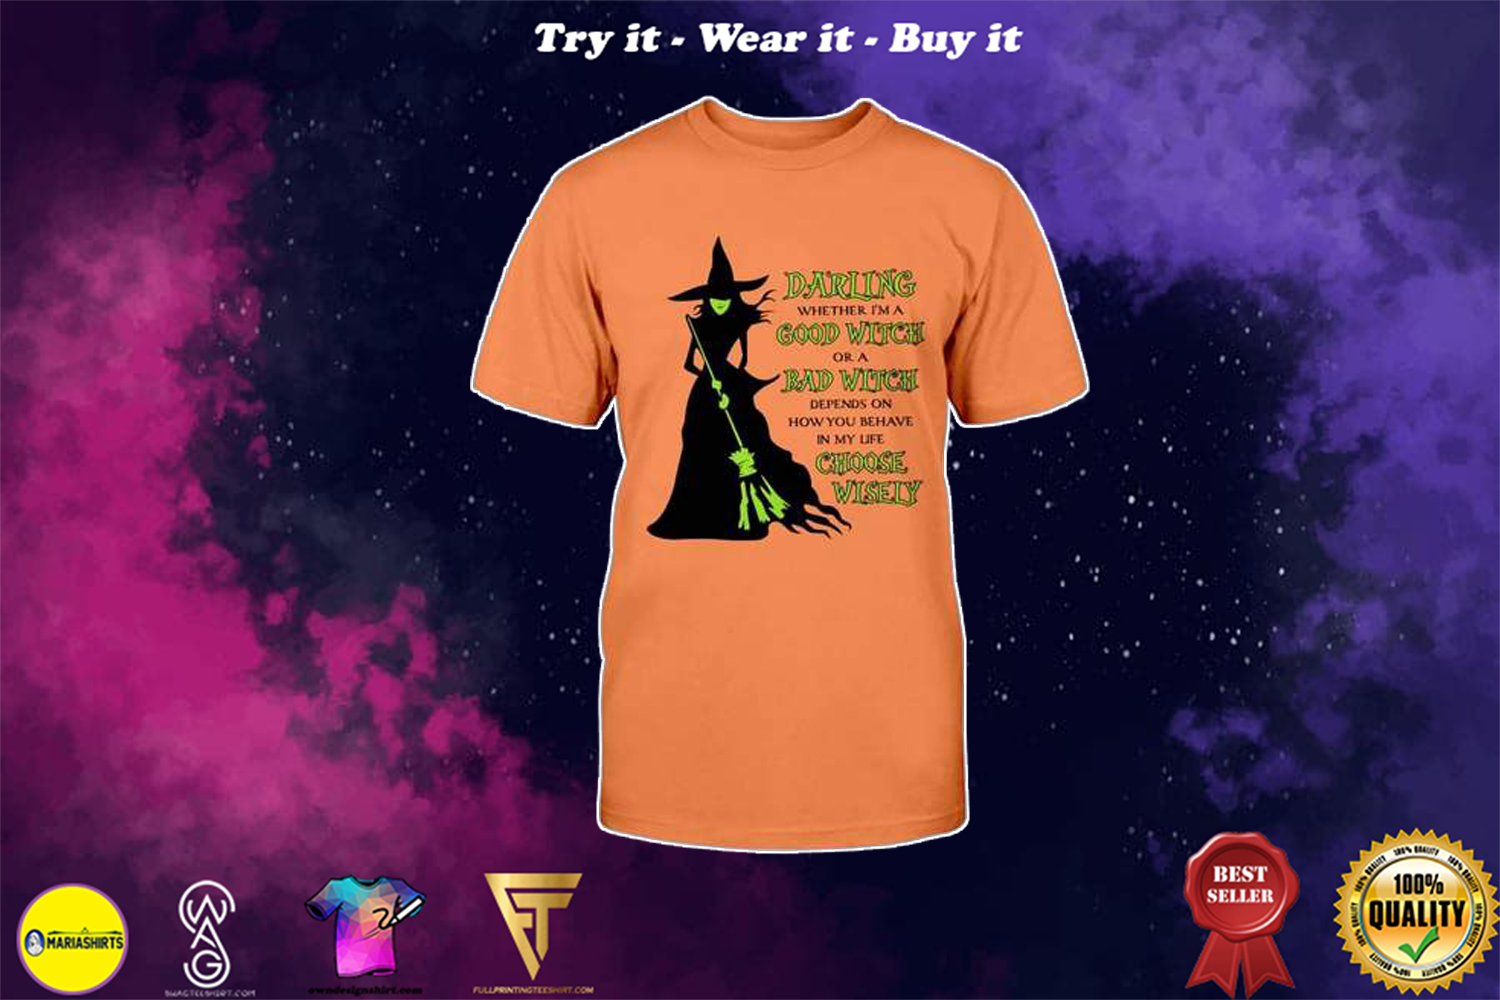 halloween darling whether im a good witch or a bad witch choose wisely witch shirt